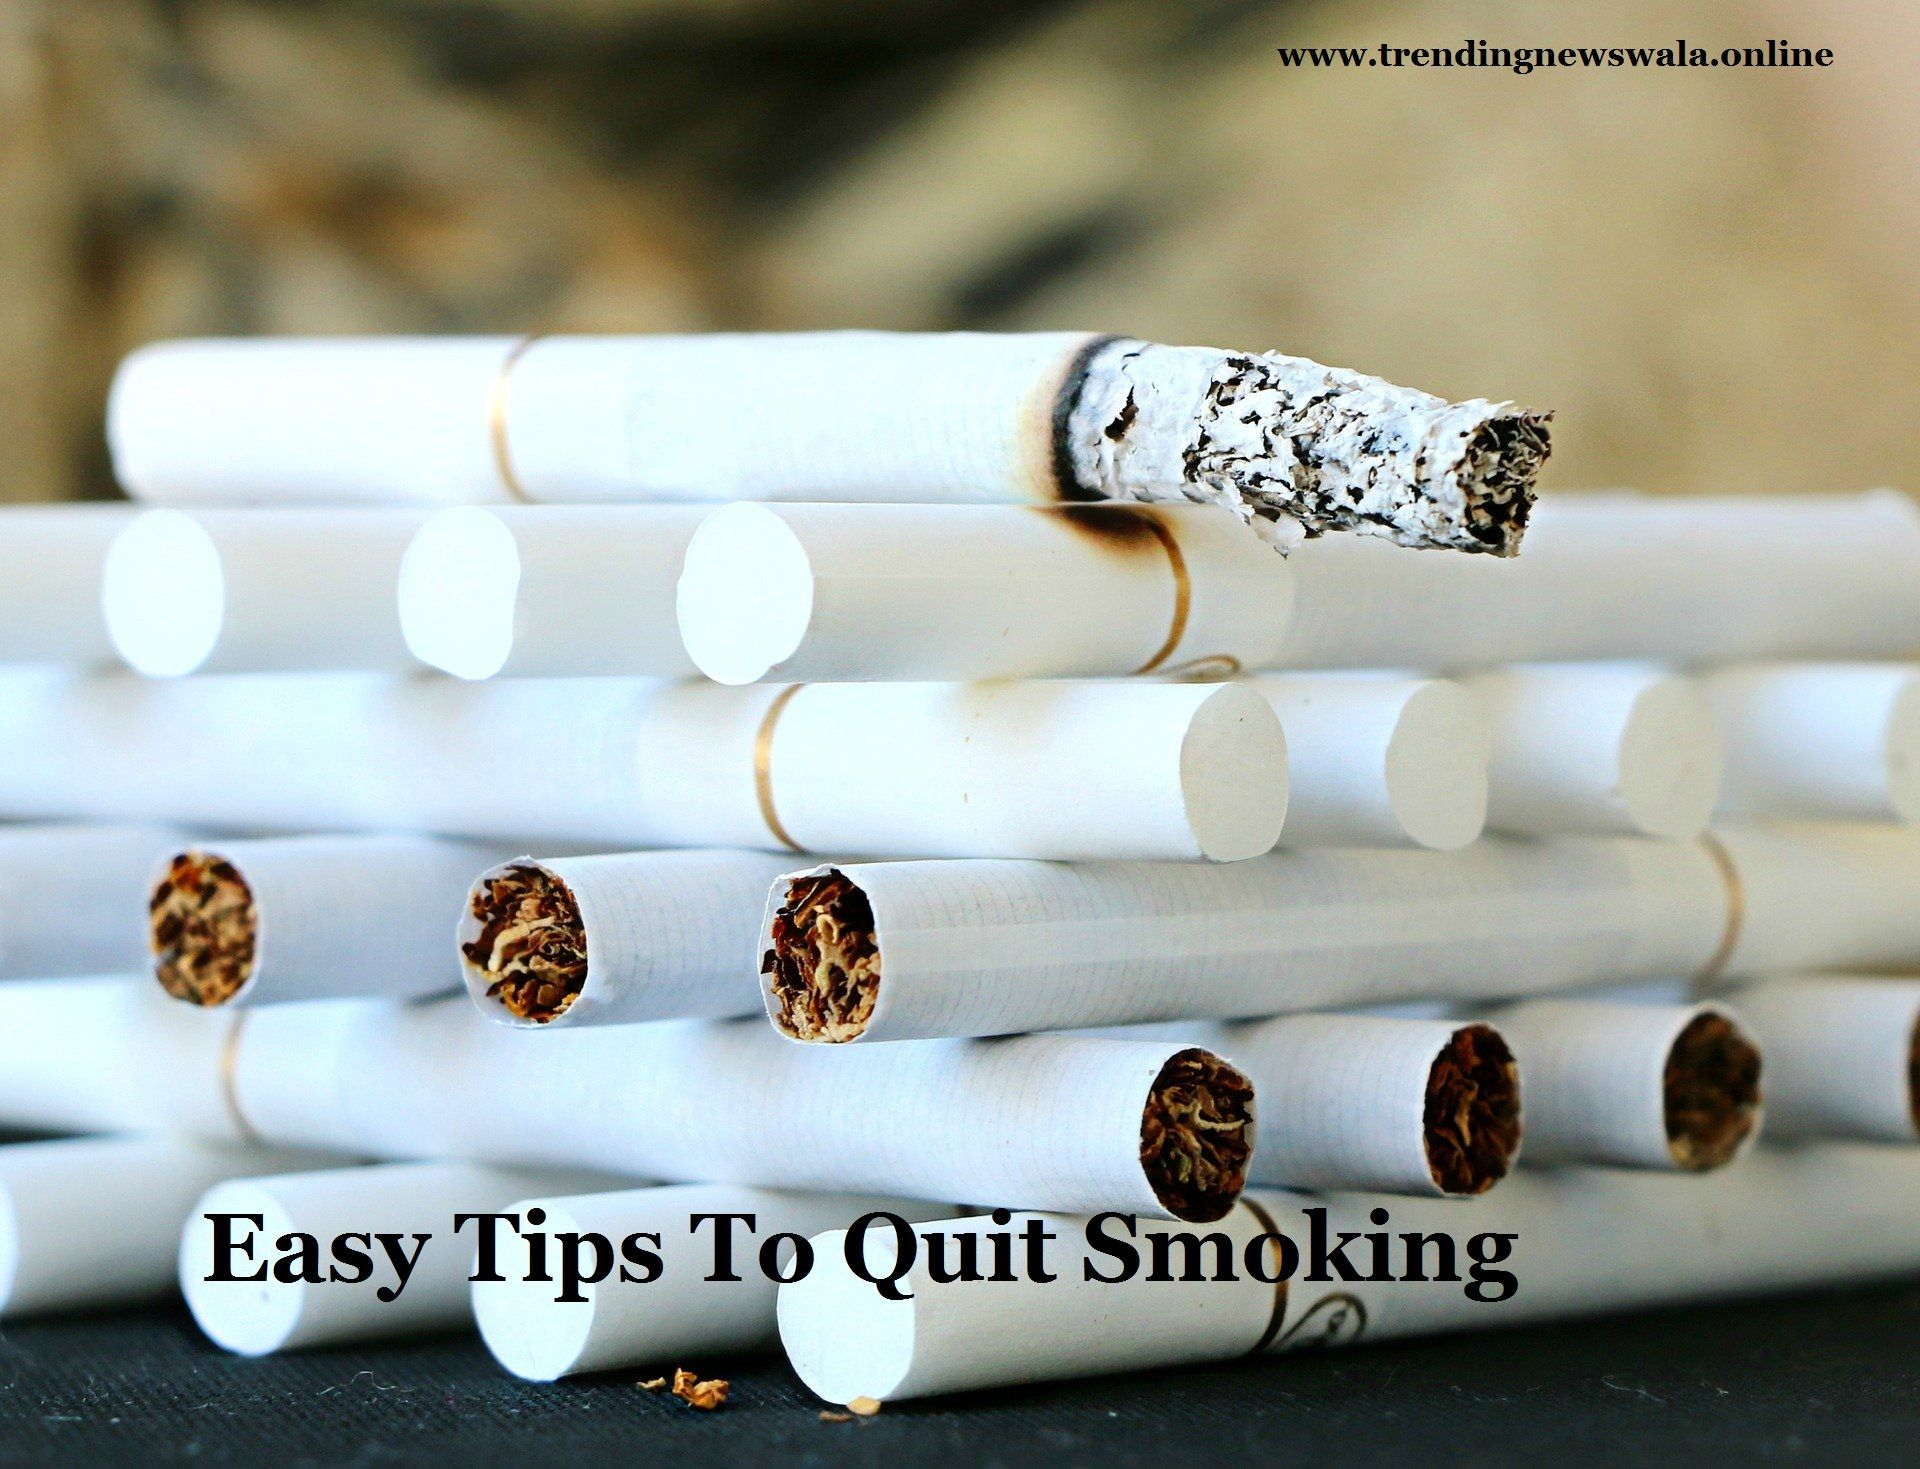 How to Stop Smoking Easy Tips